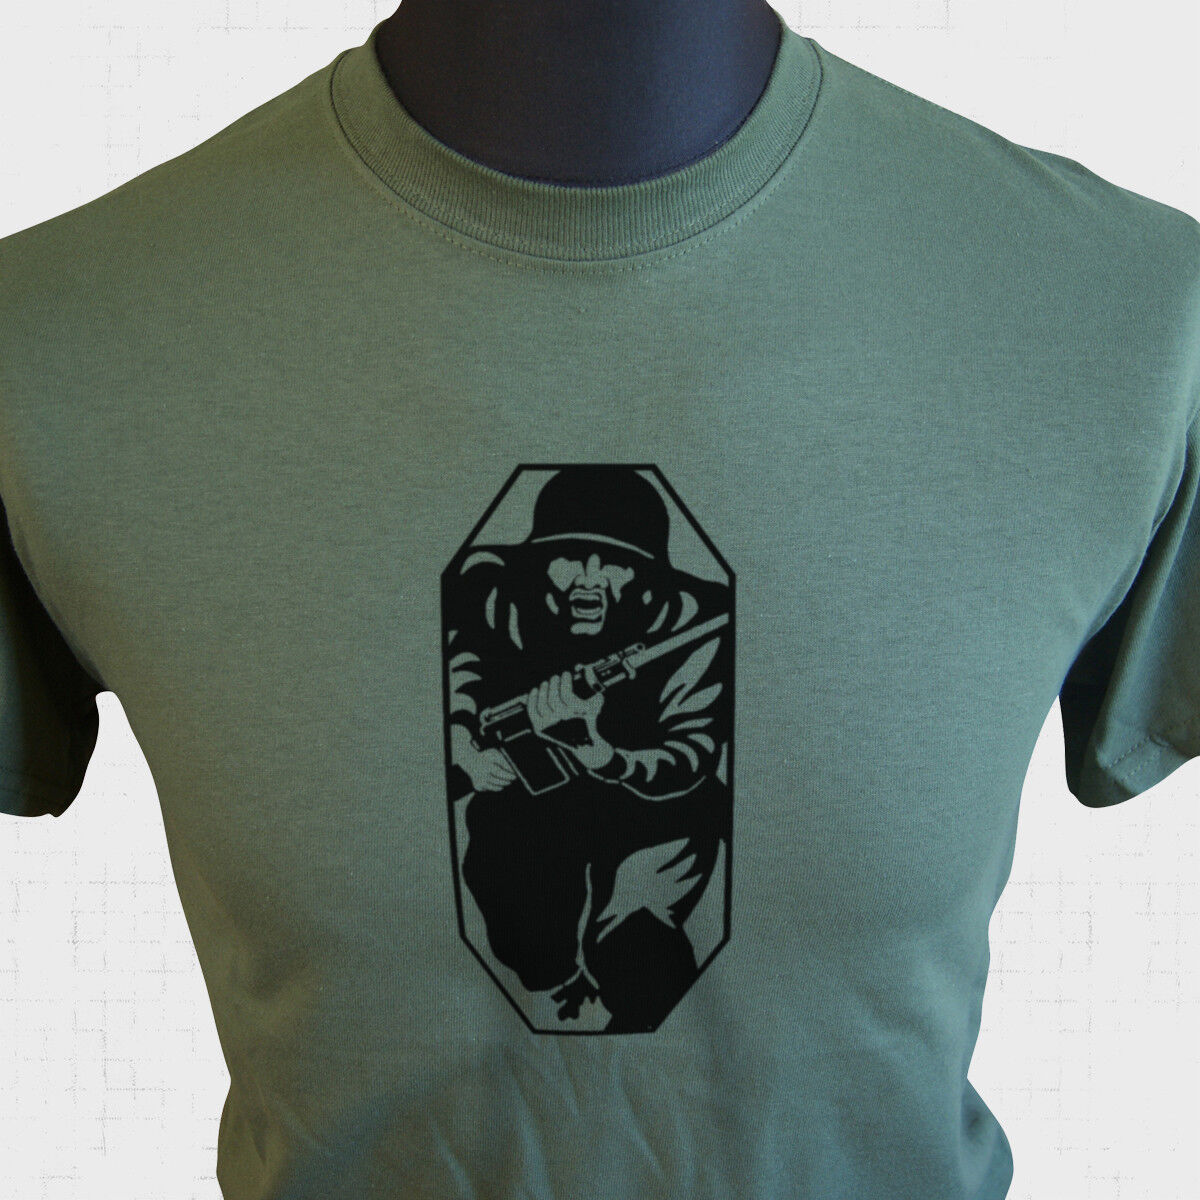 Airsoft Team 1 T-shirt Funny Gift Paintball Mens Fathers day  Army Combat